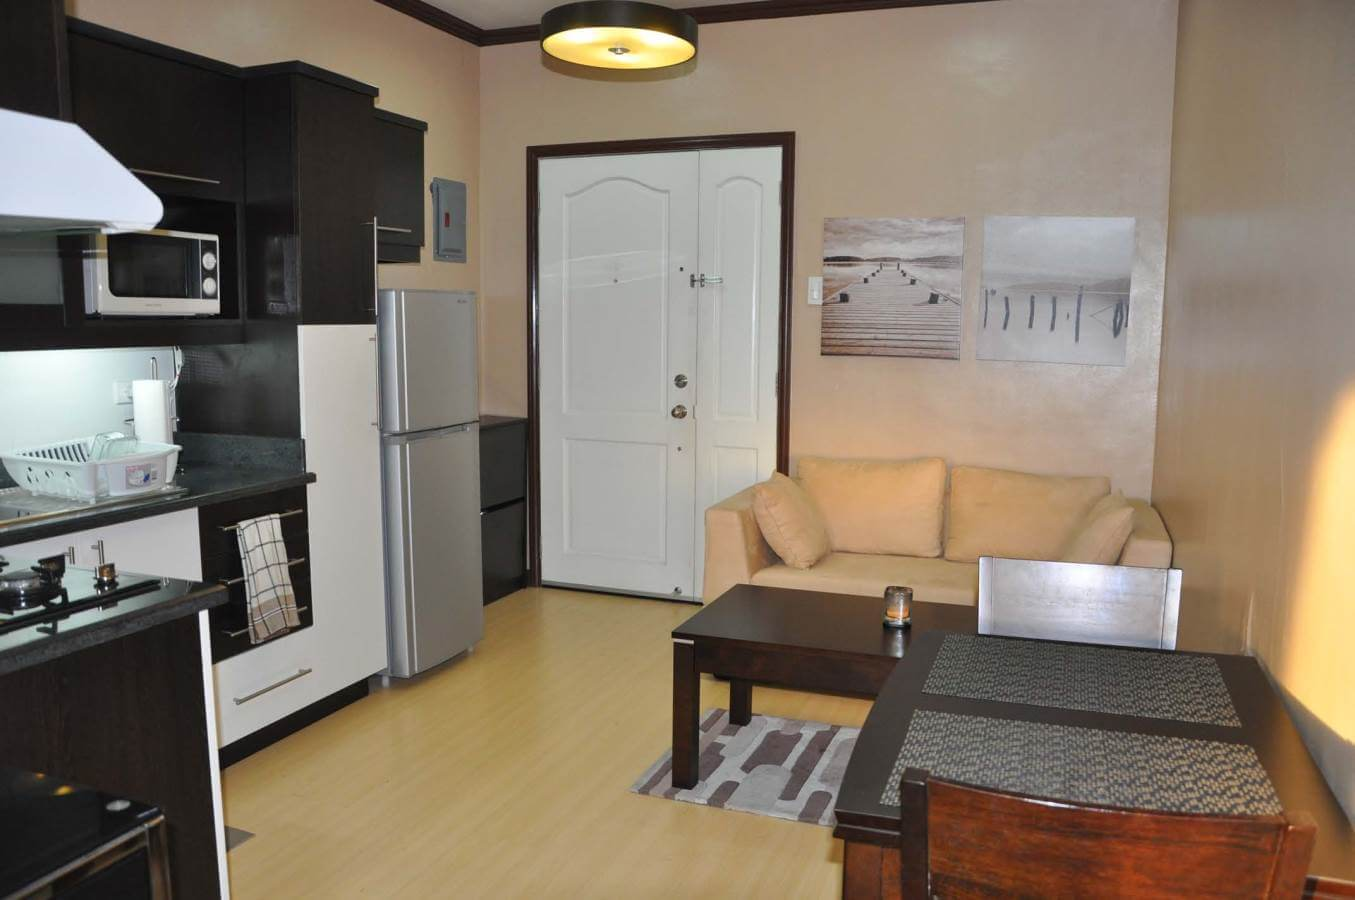 Palaciego uno fully furnished 1 bedroom condo unit for for 1 bedroom condo for rent